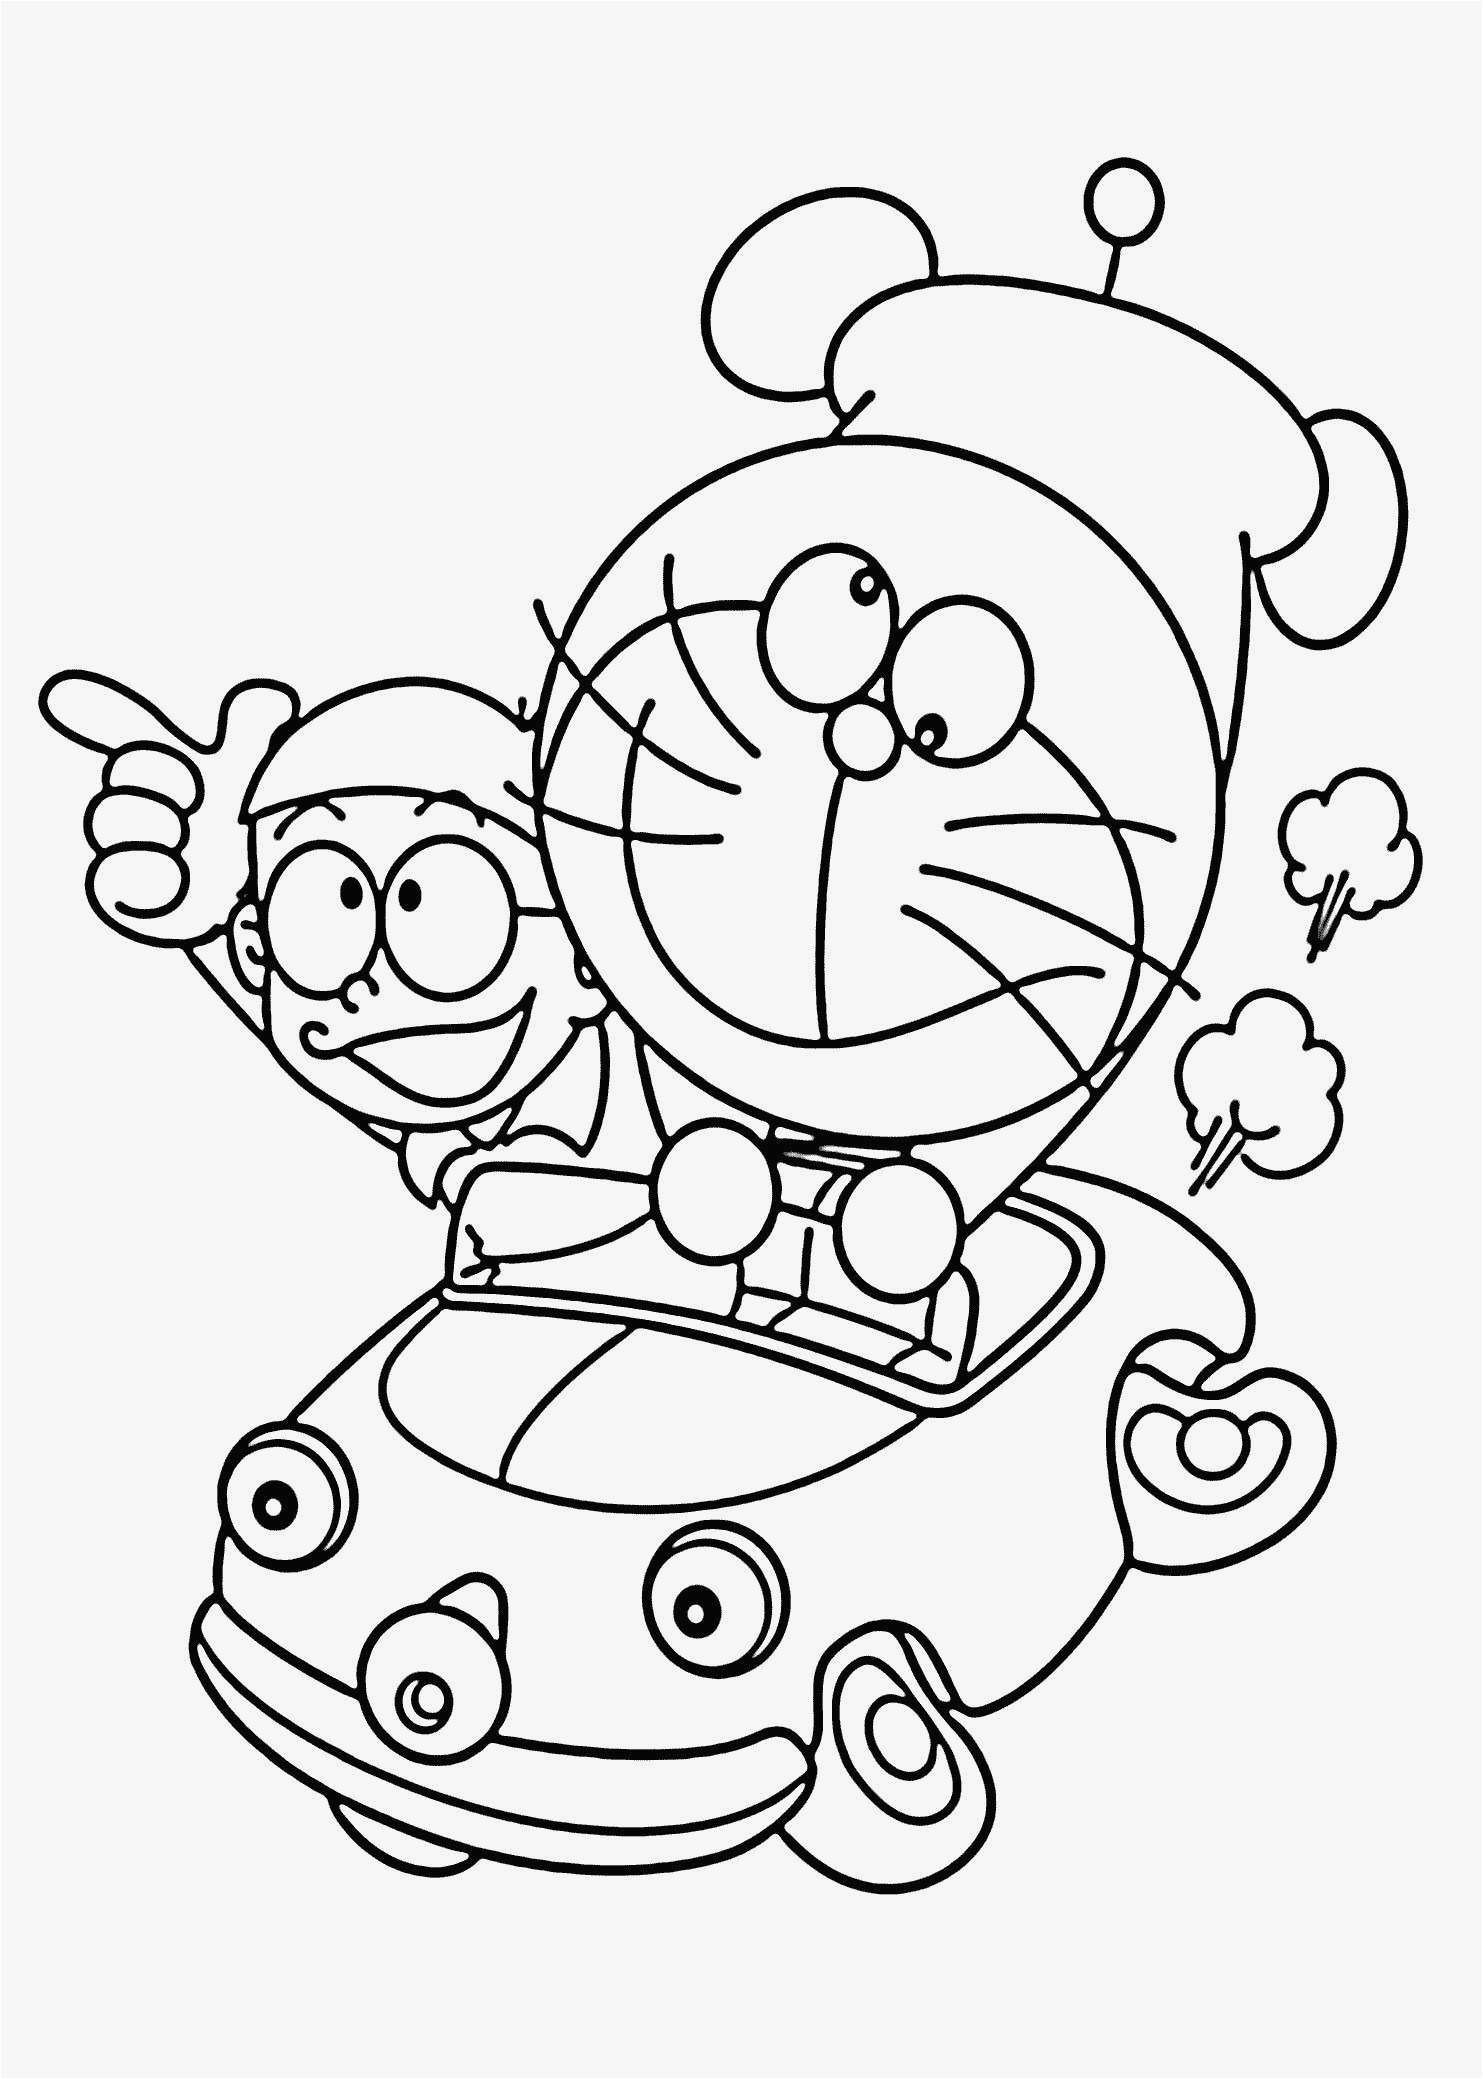 Christmas Coloring Online With Sample Pages You Can Color Line